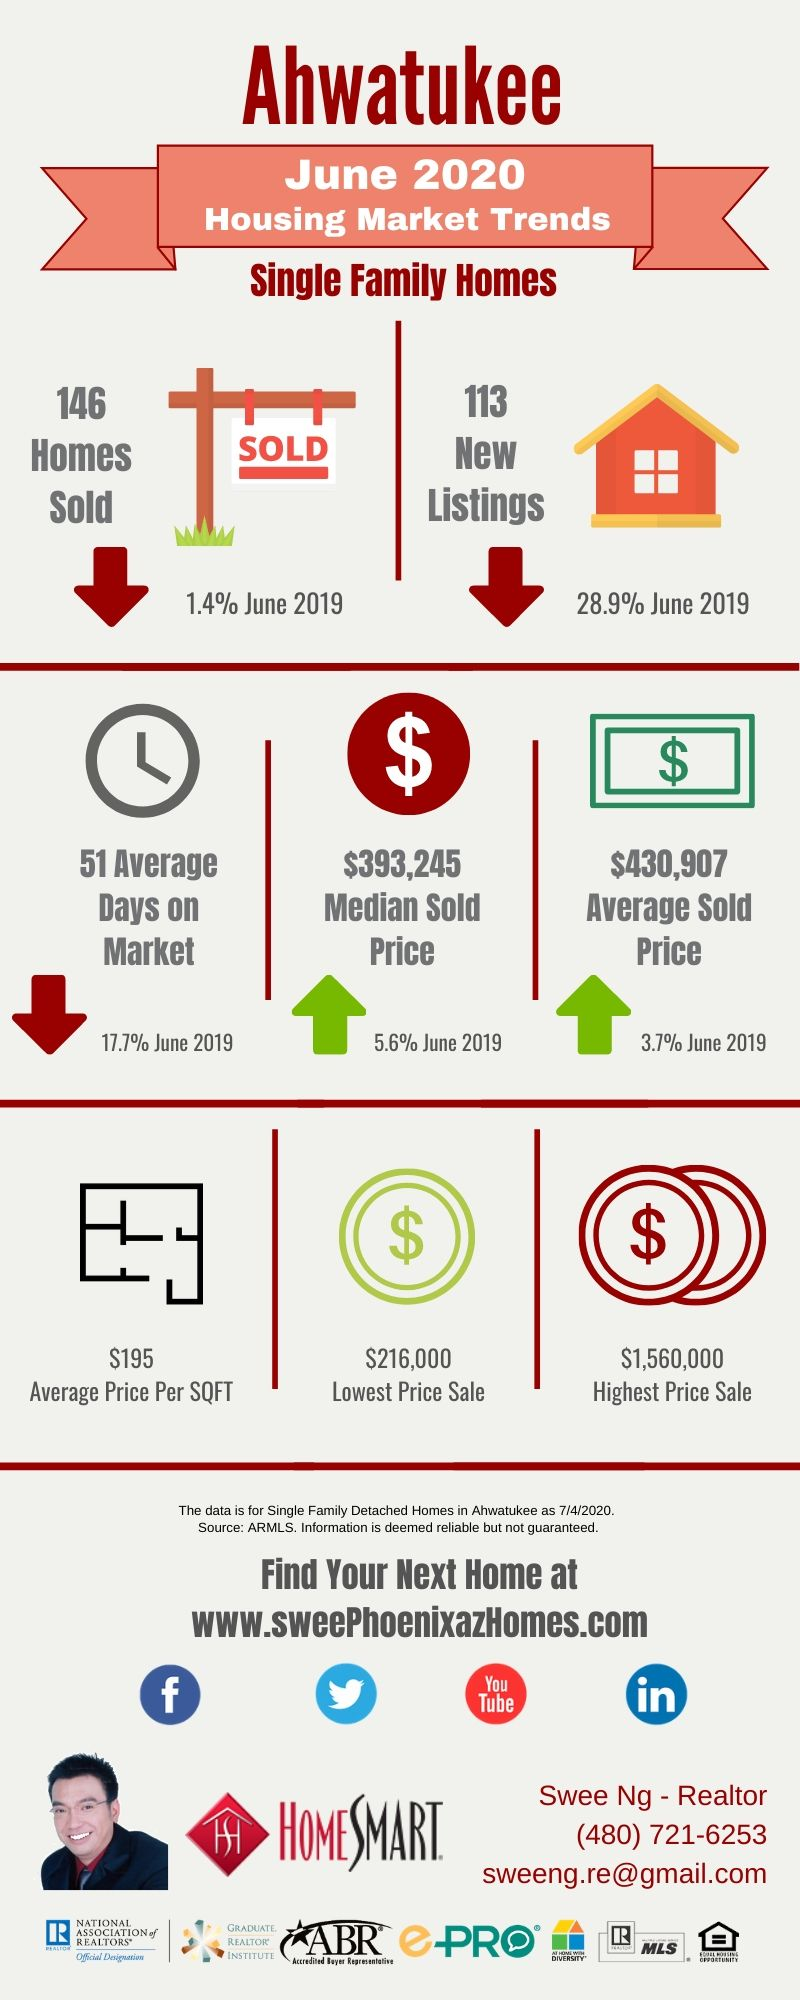 June 2020 Ahwatukee Housing Market Update, House Value, Real Estate and Statistic by Swee Ng